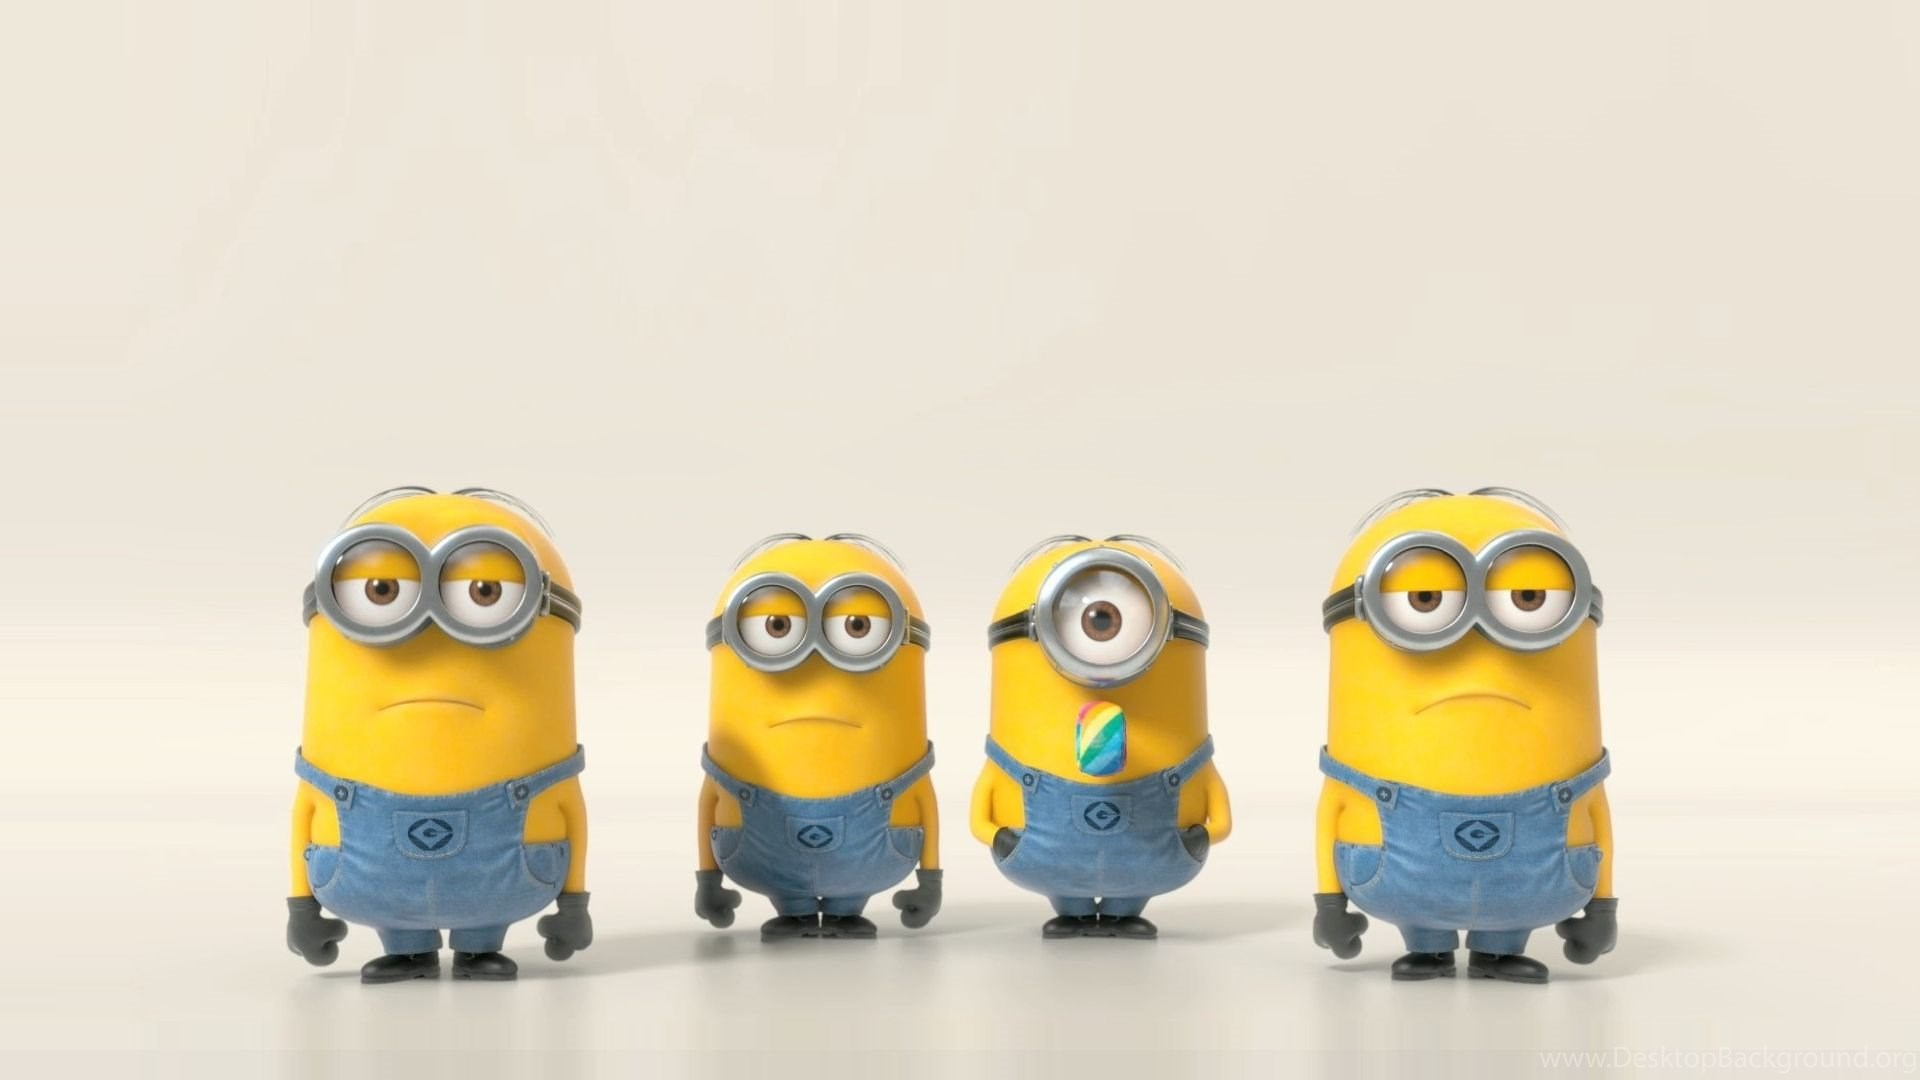 download minion wallpapers hd 2840 2560x1440 px high resolution